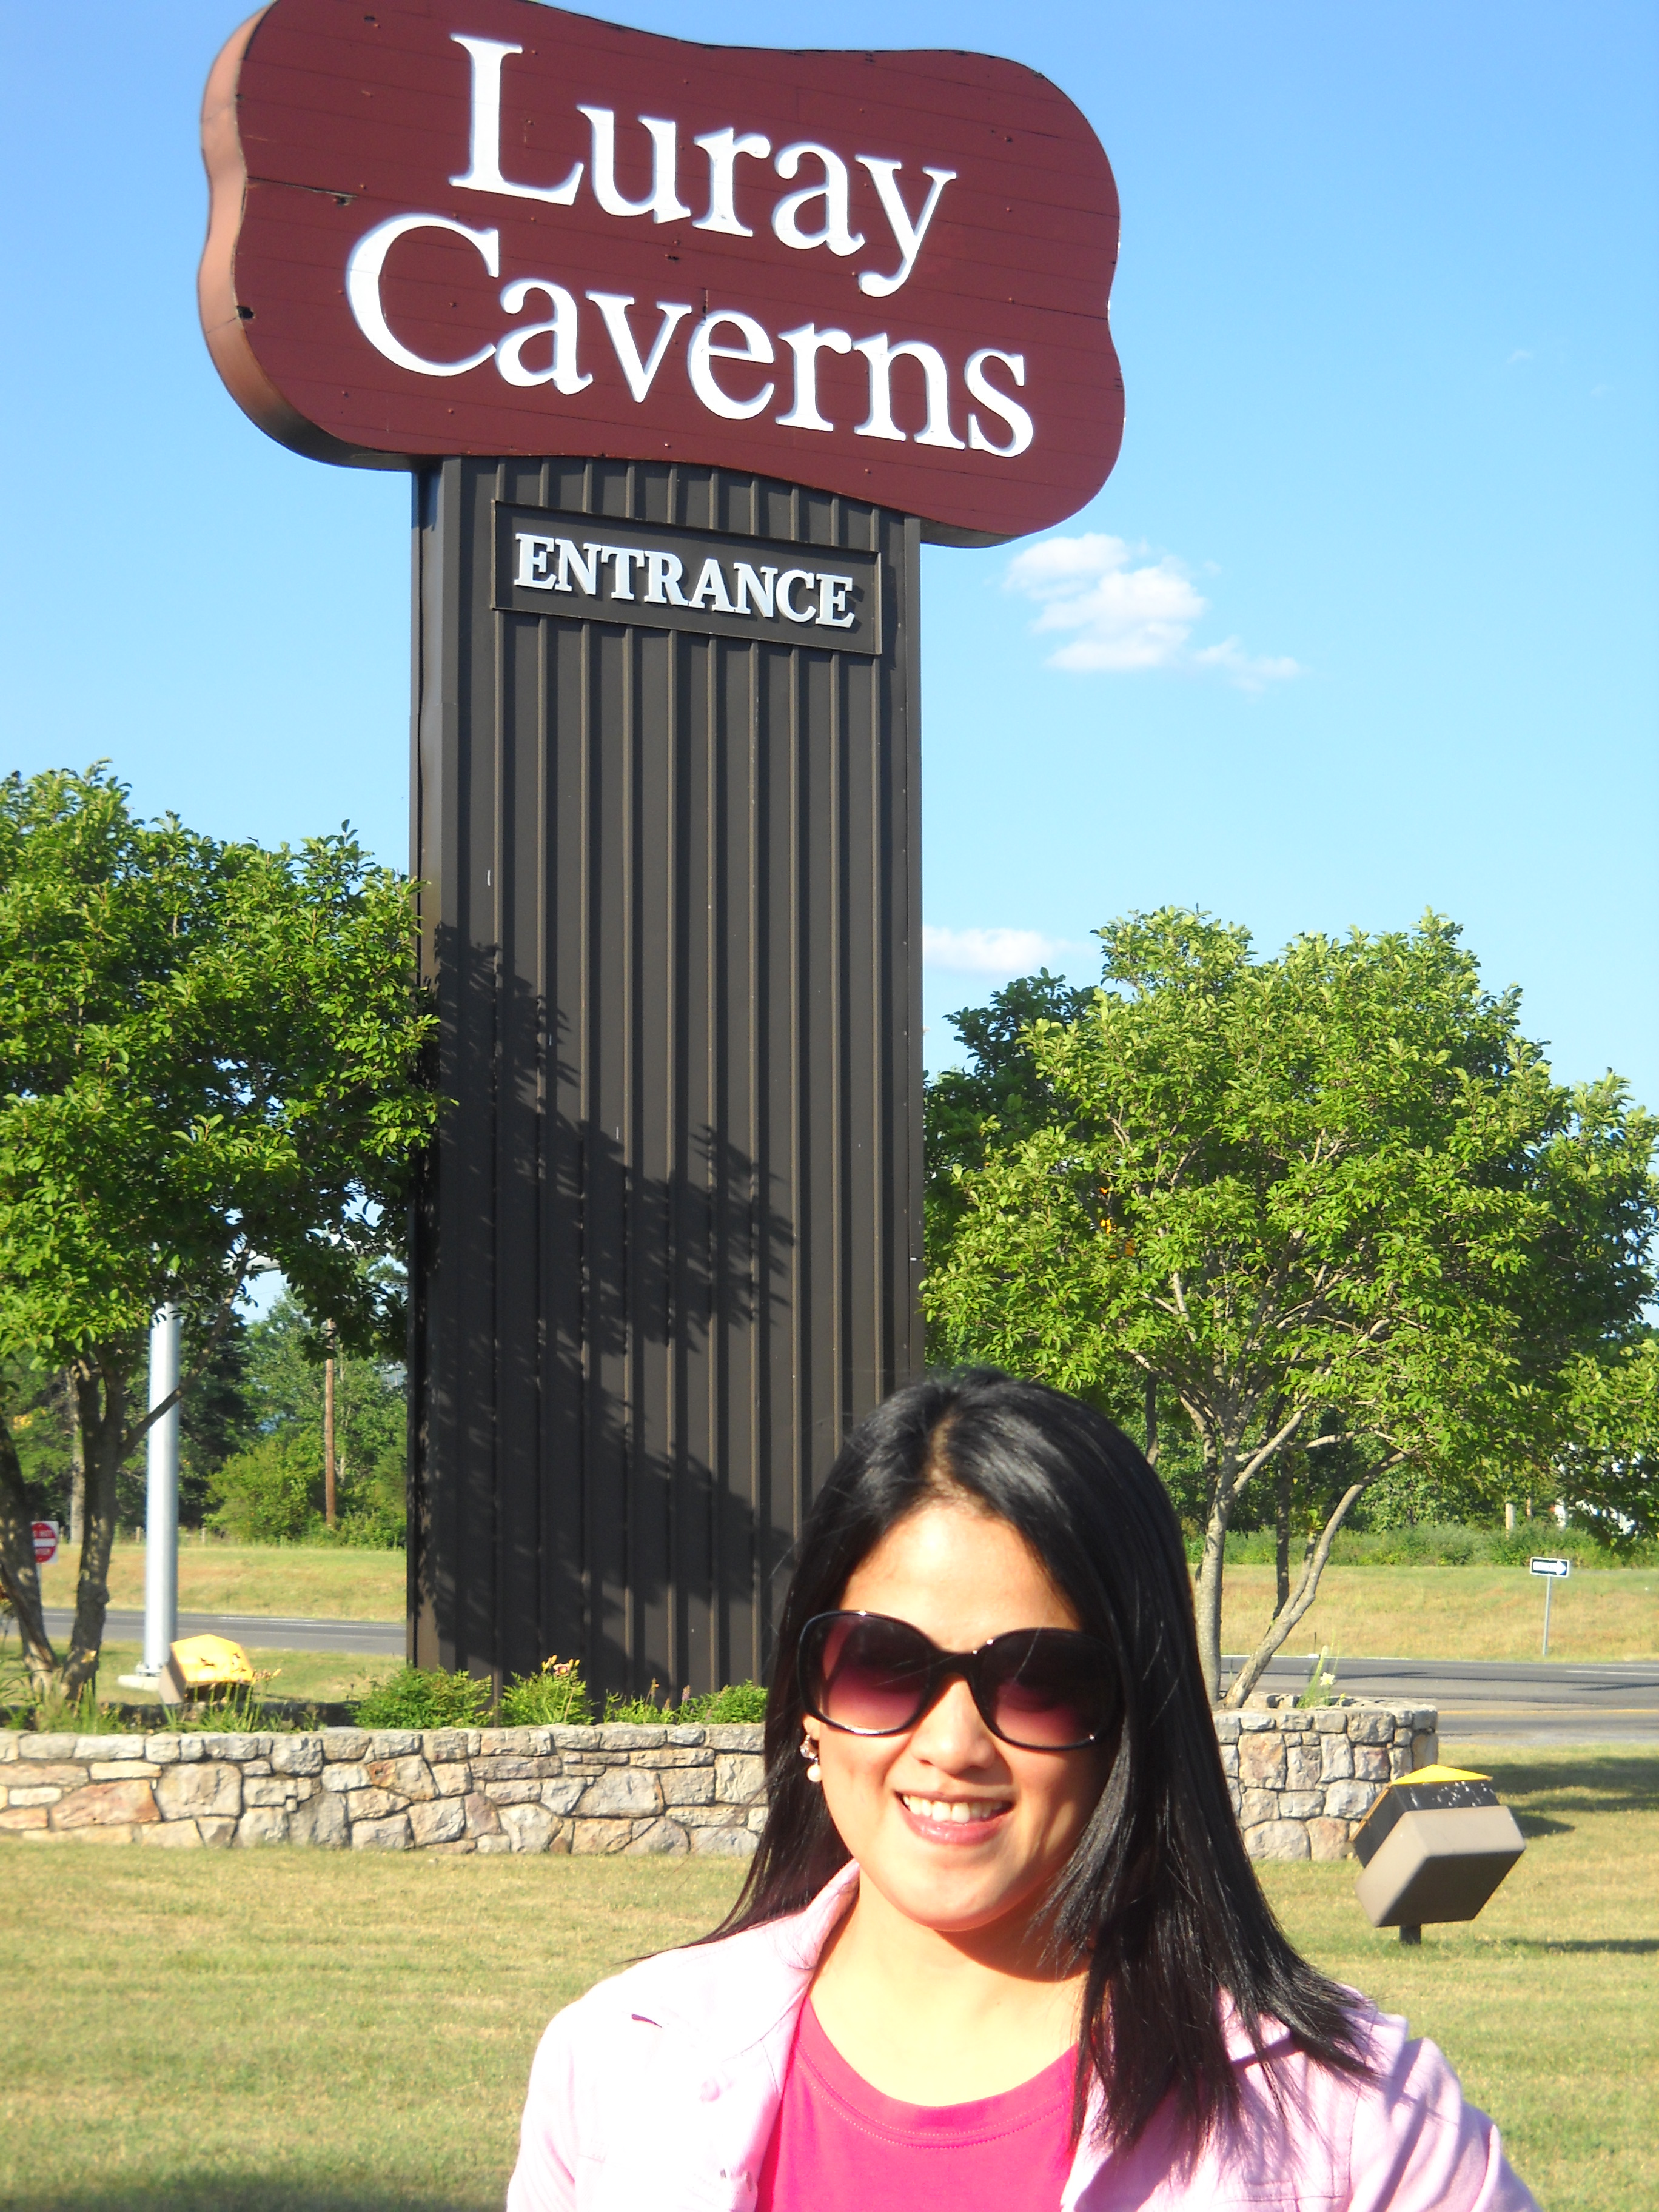 Luray caverns discount coupons